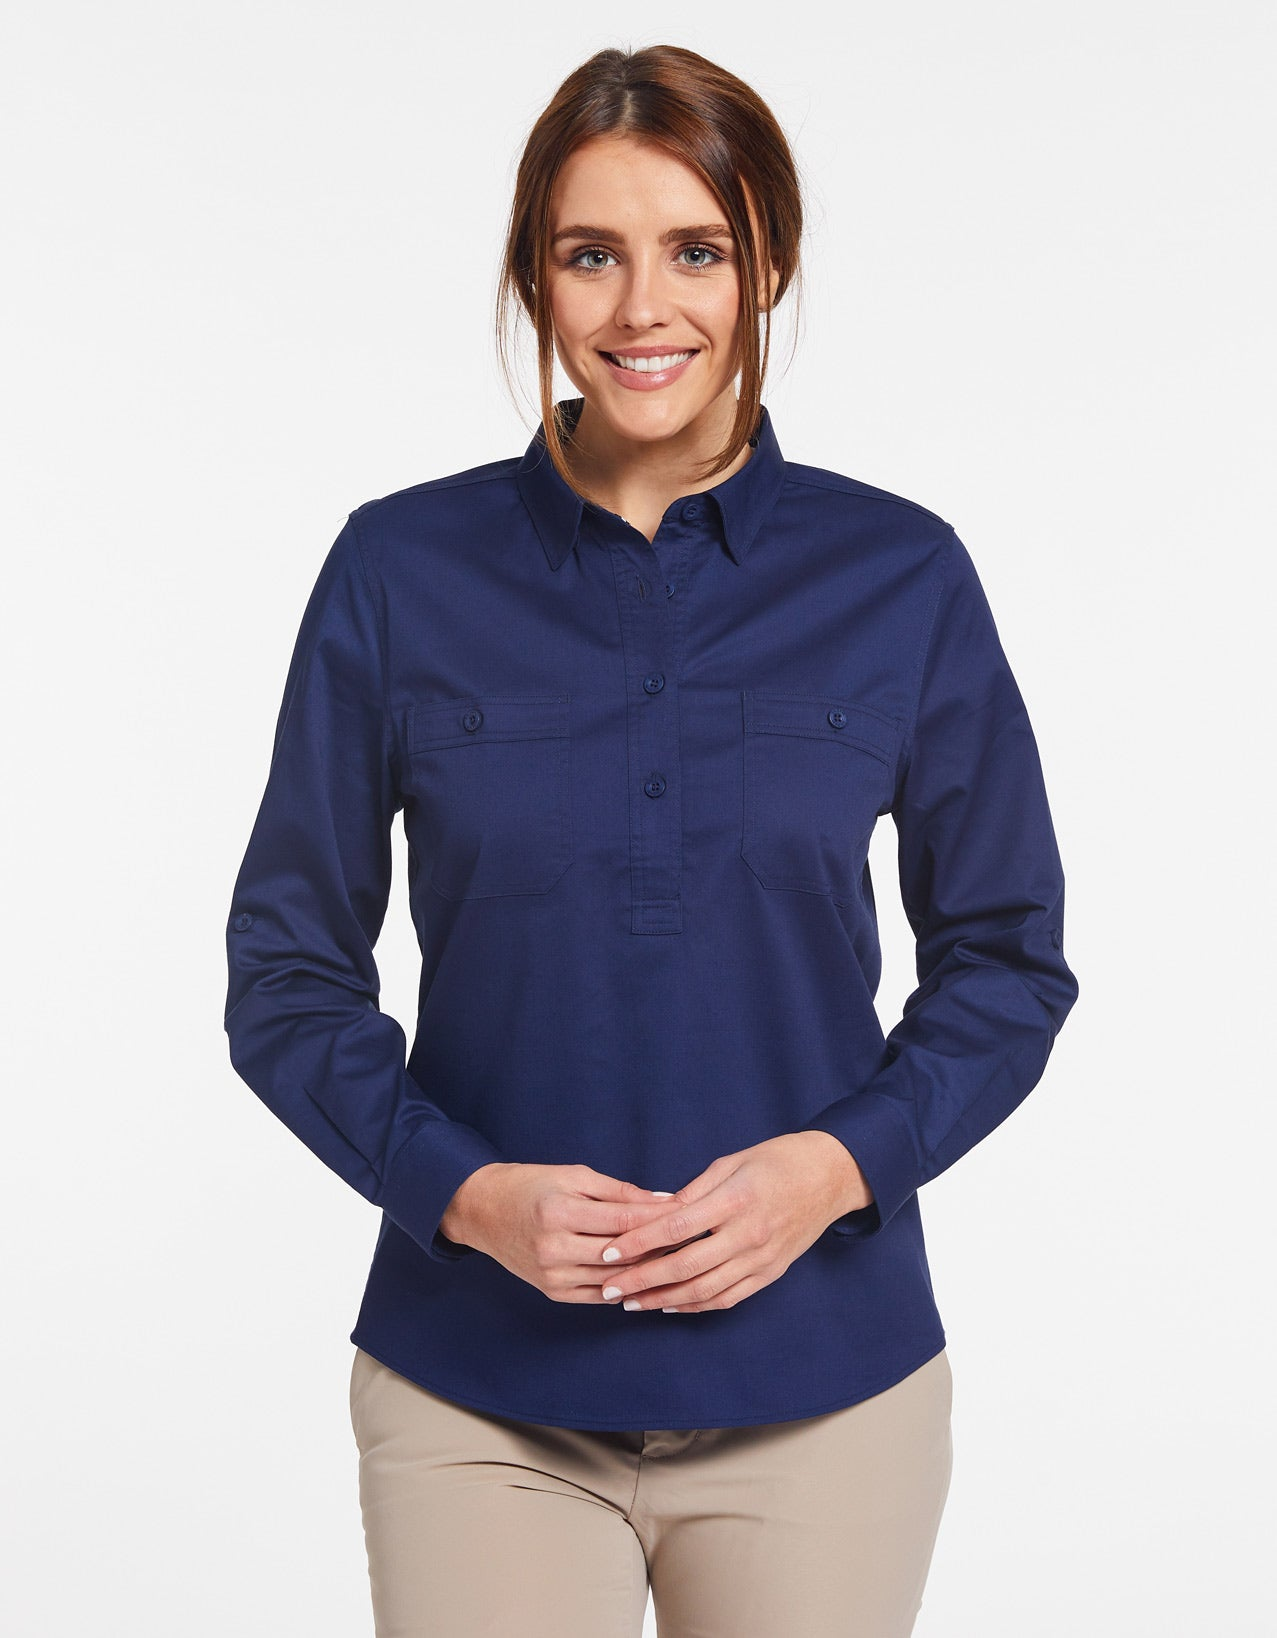 Solbari Sun Protection UPF50+ Women's Outback Half Placket Shirt Technicool Collection in Navy